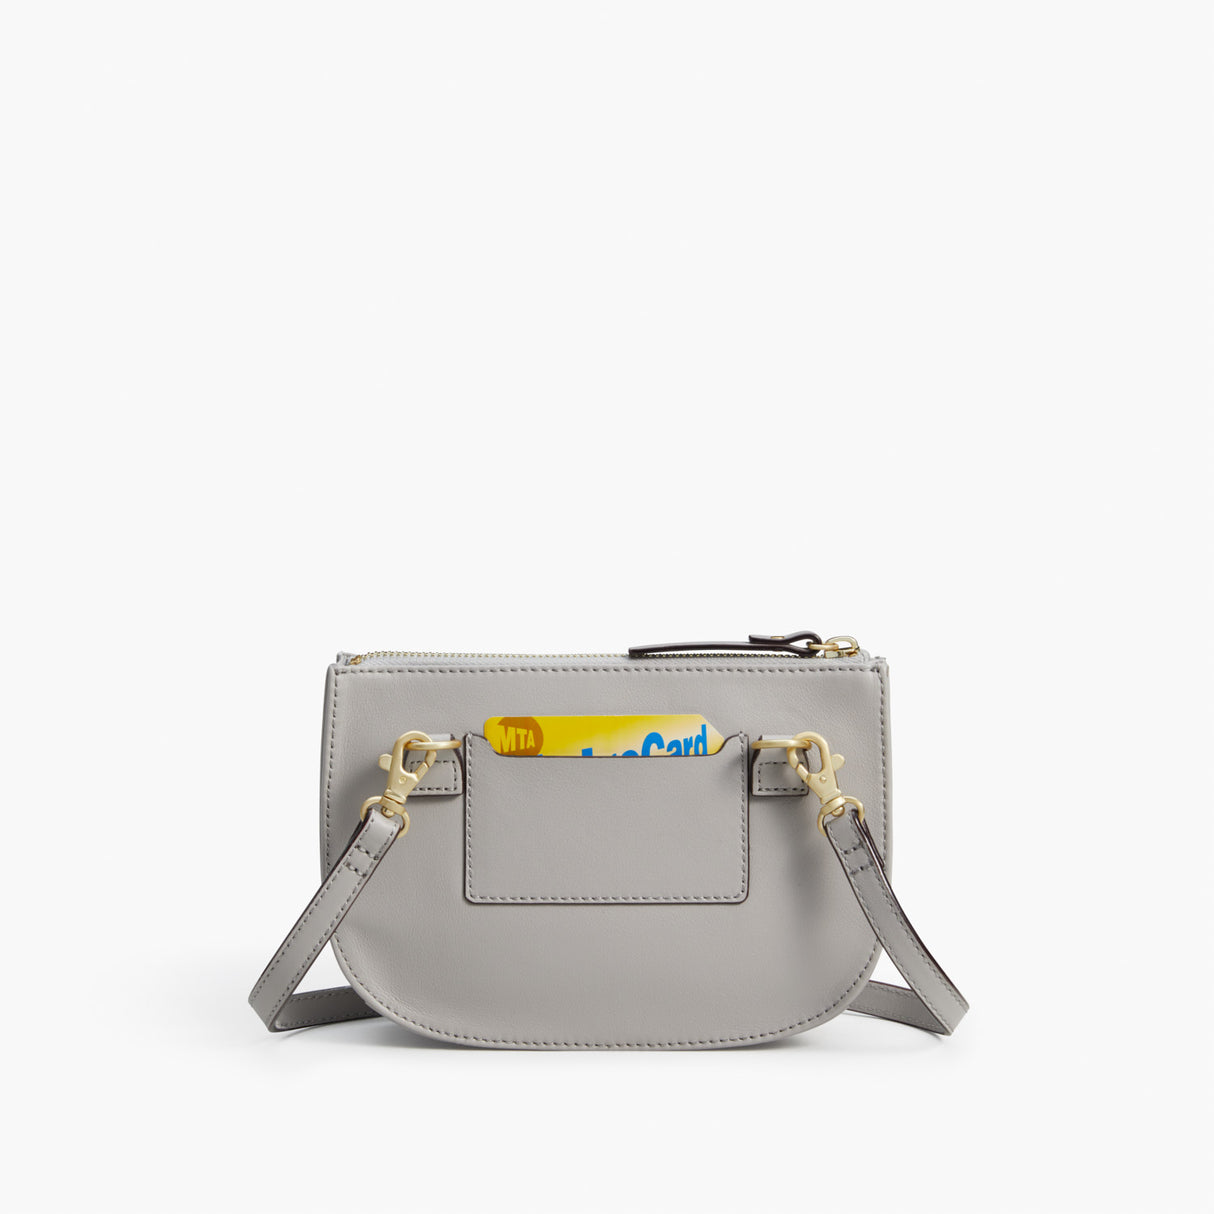 Back Card Slot - The Waverley 2 - Nappa Leather - Light Grey / Gold / Grey - Crossbody - Lo & Sons